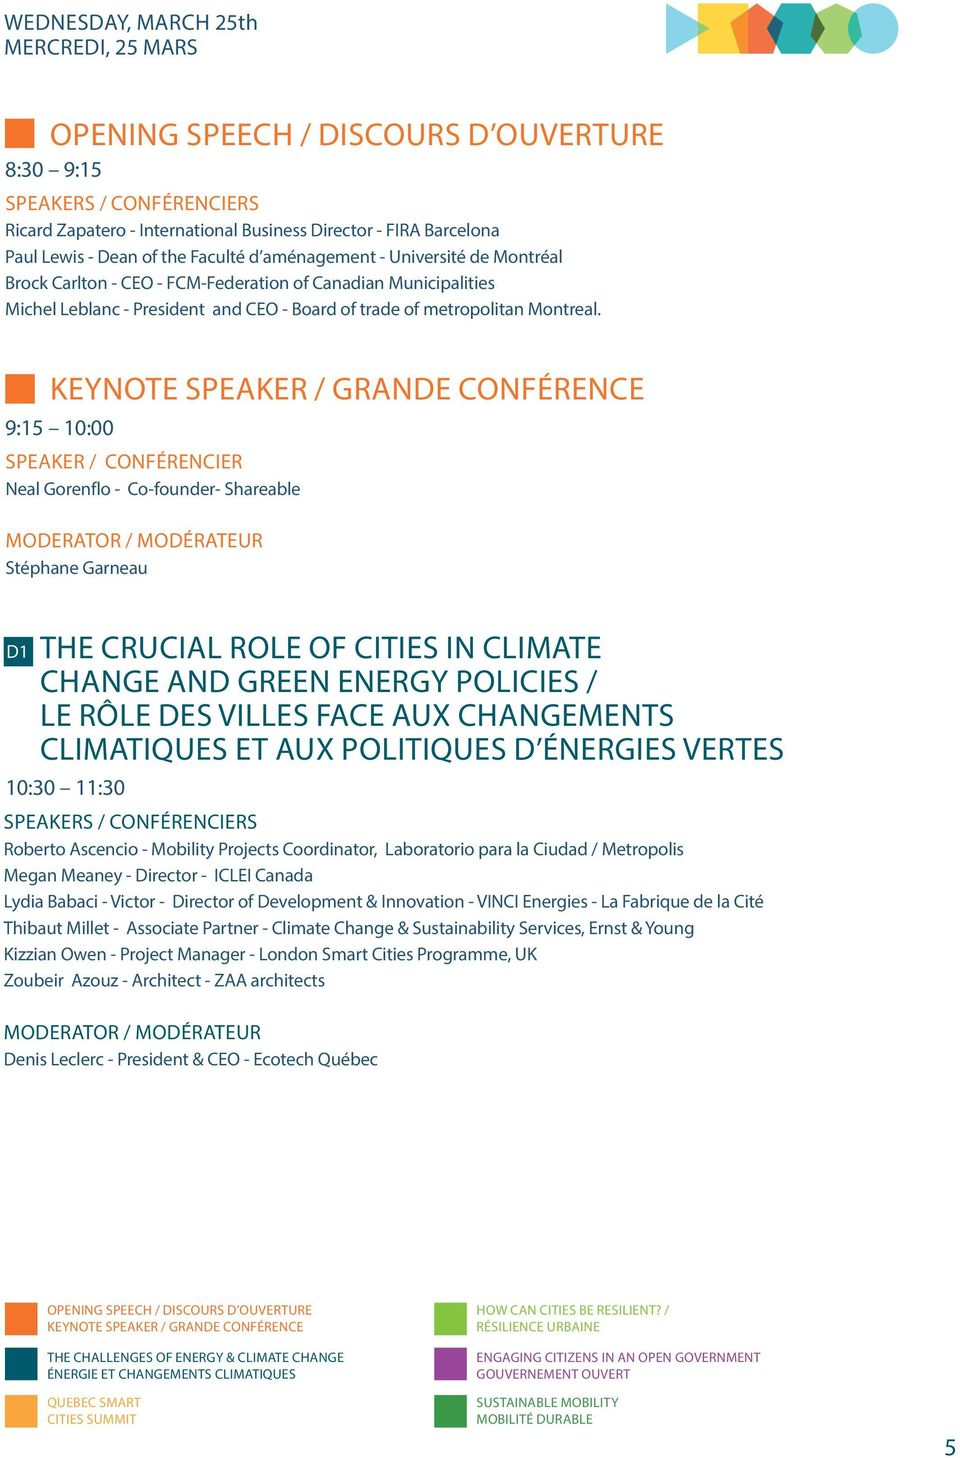 KEYNOTE SPEAKER / GRANDE CONFÉRENCE 9:15 10:00 SPEAKER / CONFÉRENCIER Neal Gorenflo - Co-founder- Shareable Stéphane Garneau D1 THE CRUCIAL ROLE OF CITIES IN CLIMATE CHANGE AND GREEN ENERGY POLICIES